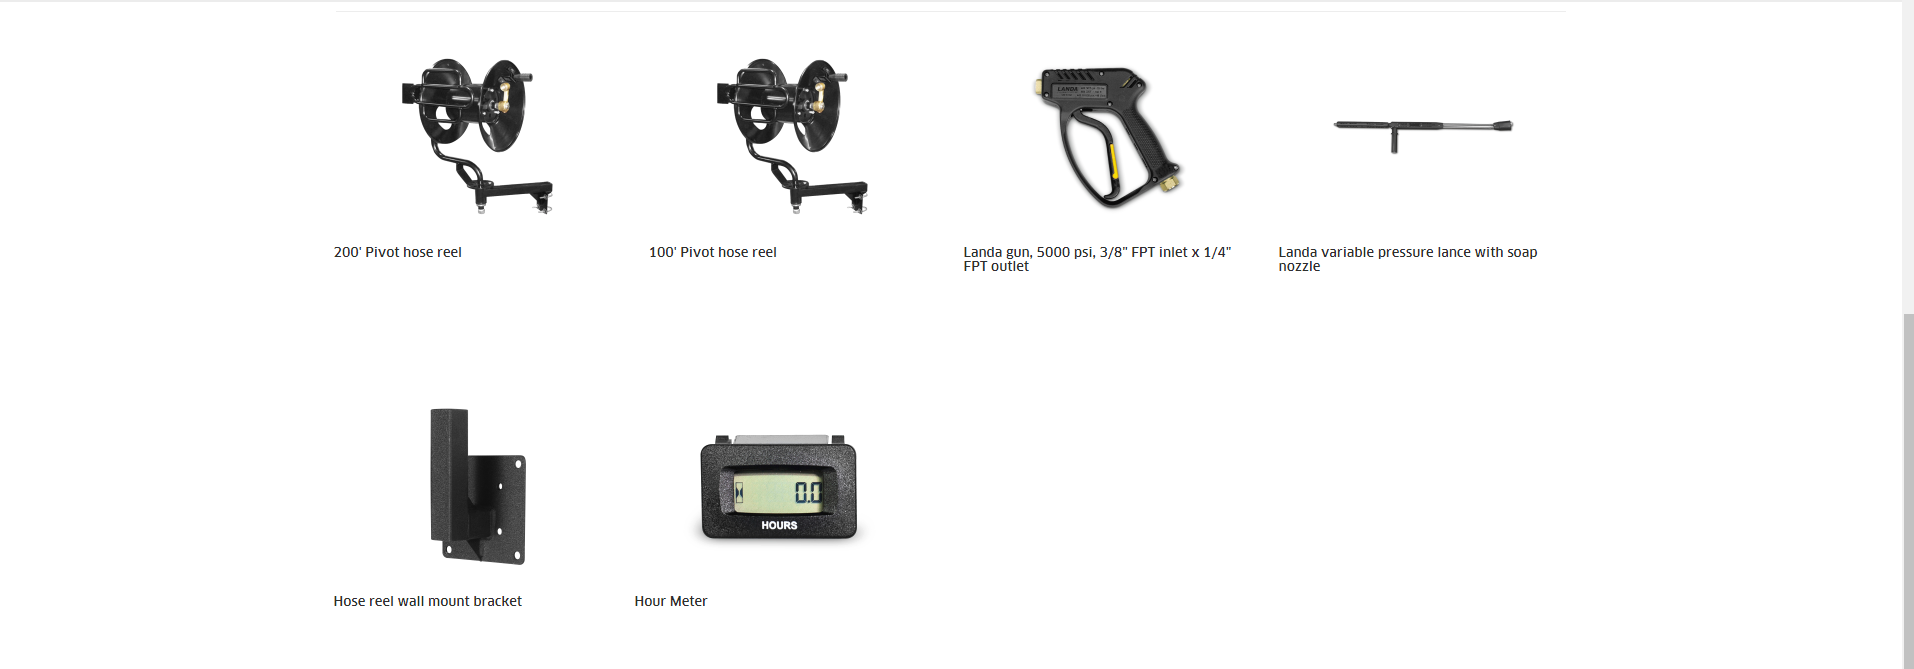 Pressure washer accesories 2.png